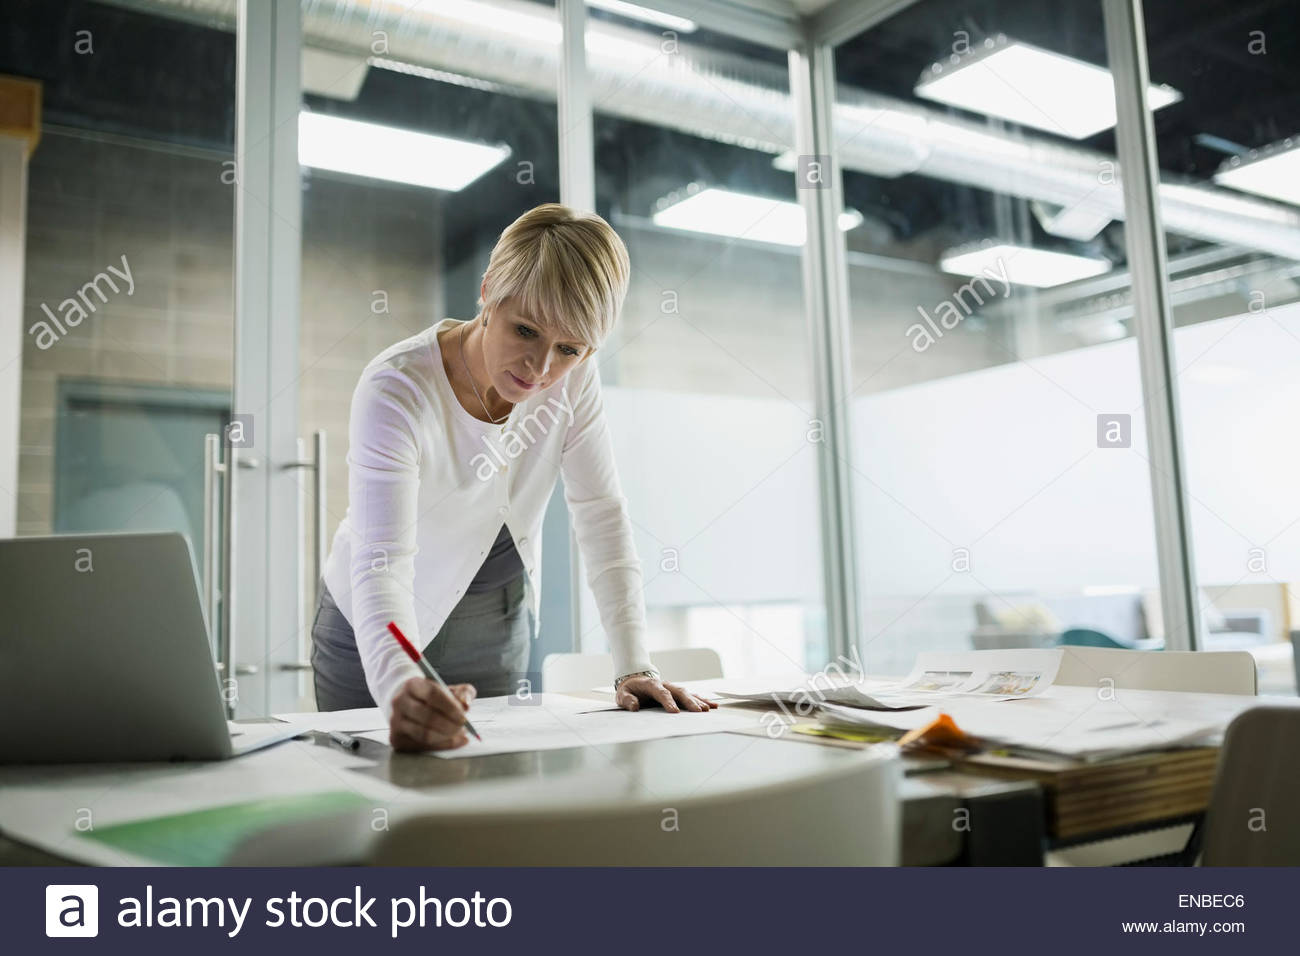 Businesswoman editing proofs in conference room - Stock Image